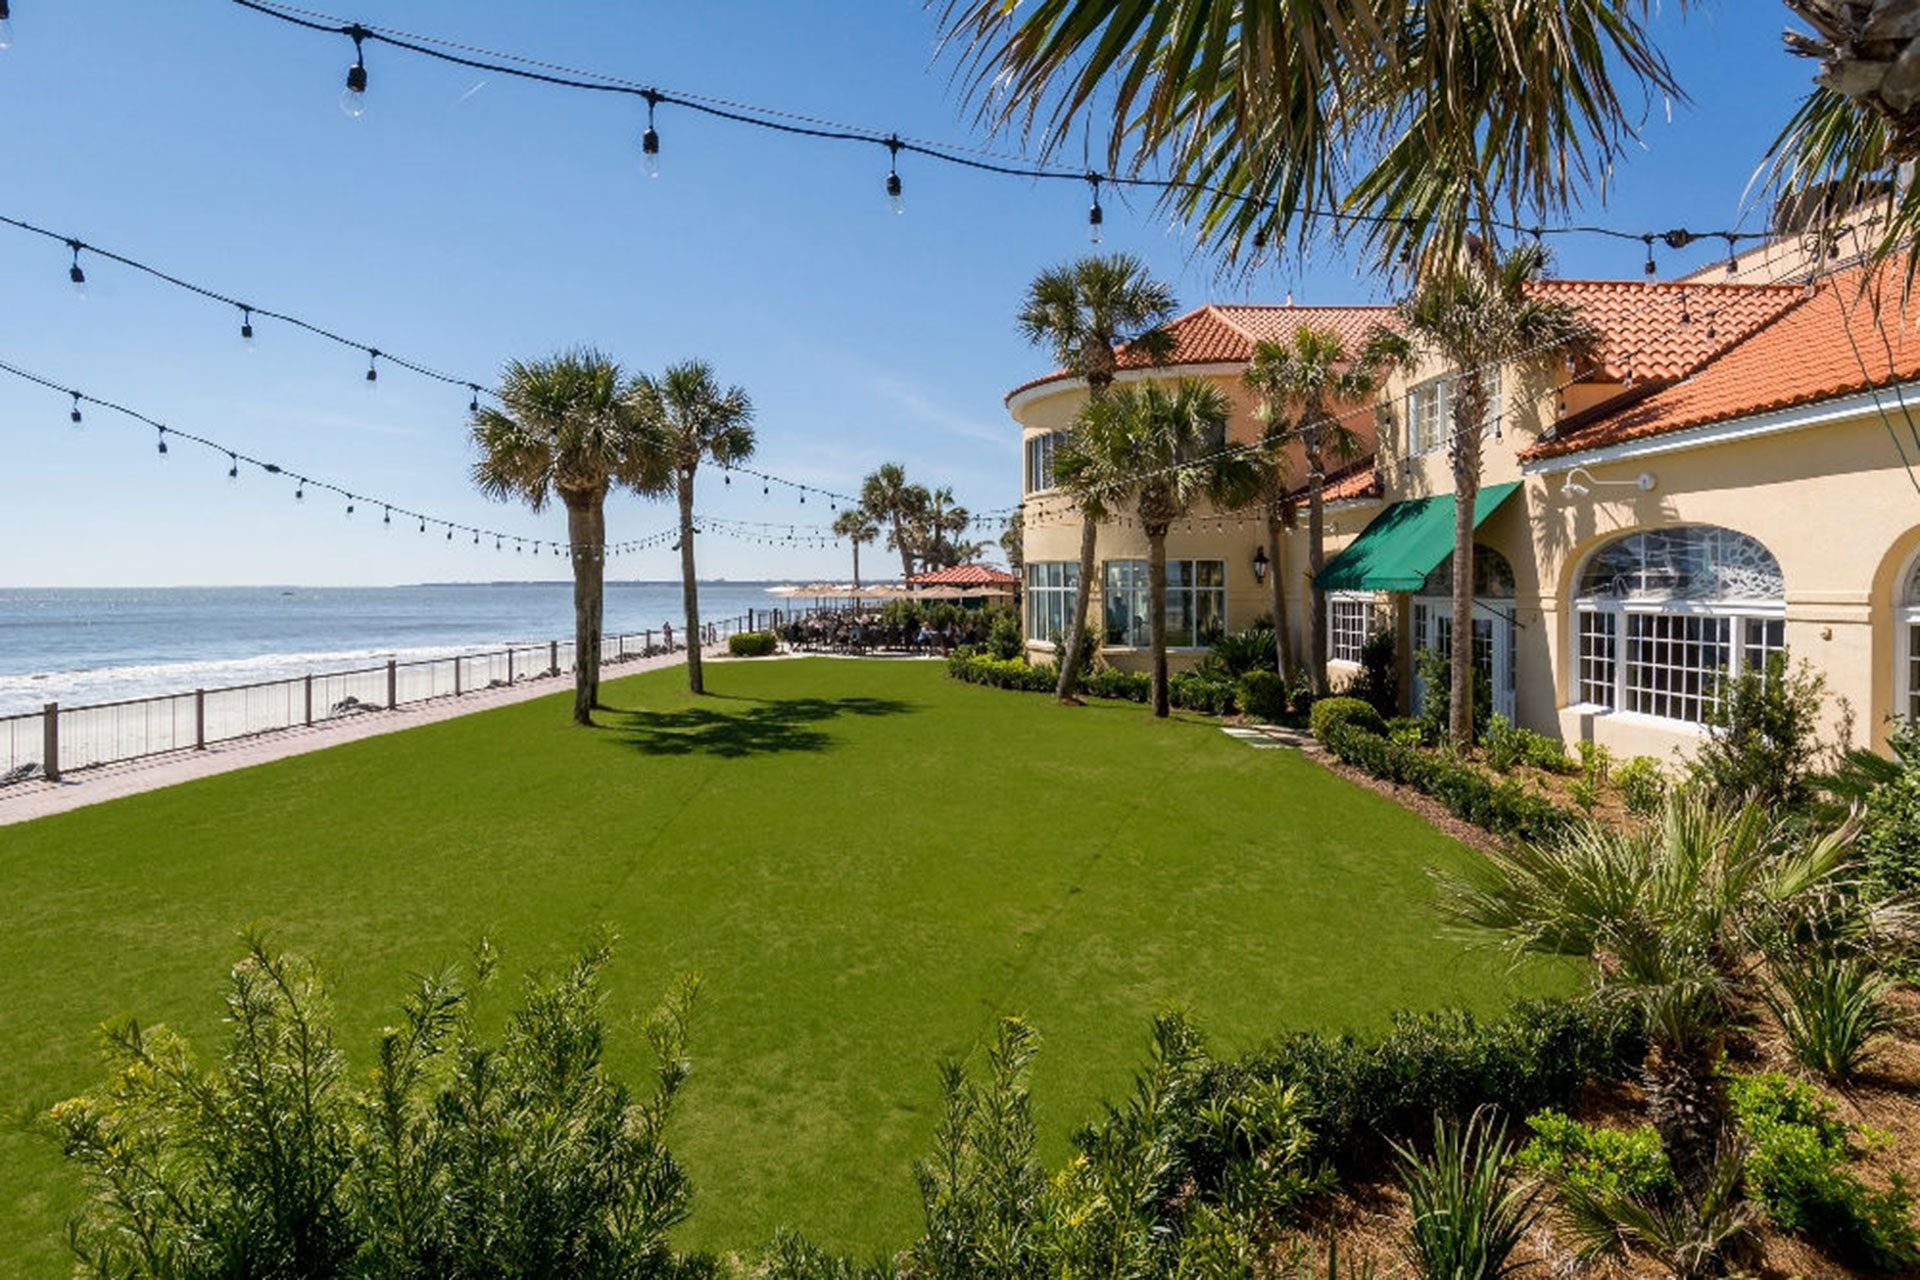 The King and Prince Beach & Golf Resort on St. Simons Island in Georgia; Courtesy of The King and Prince Beach & Golf Resort